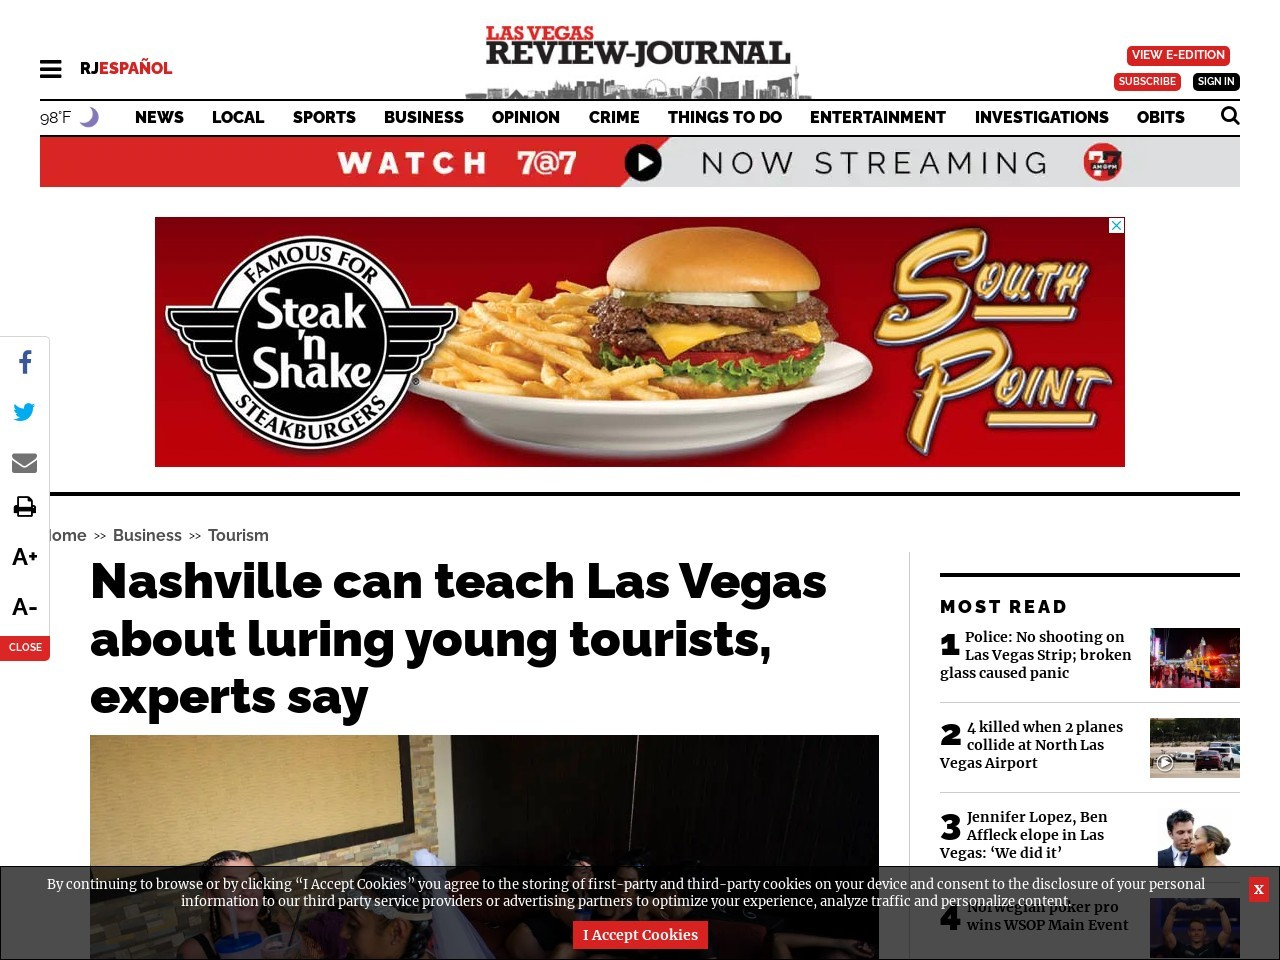 Nashville can teach Las Vegas about luring young tourists, experts say